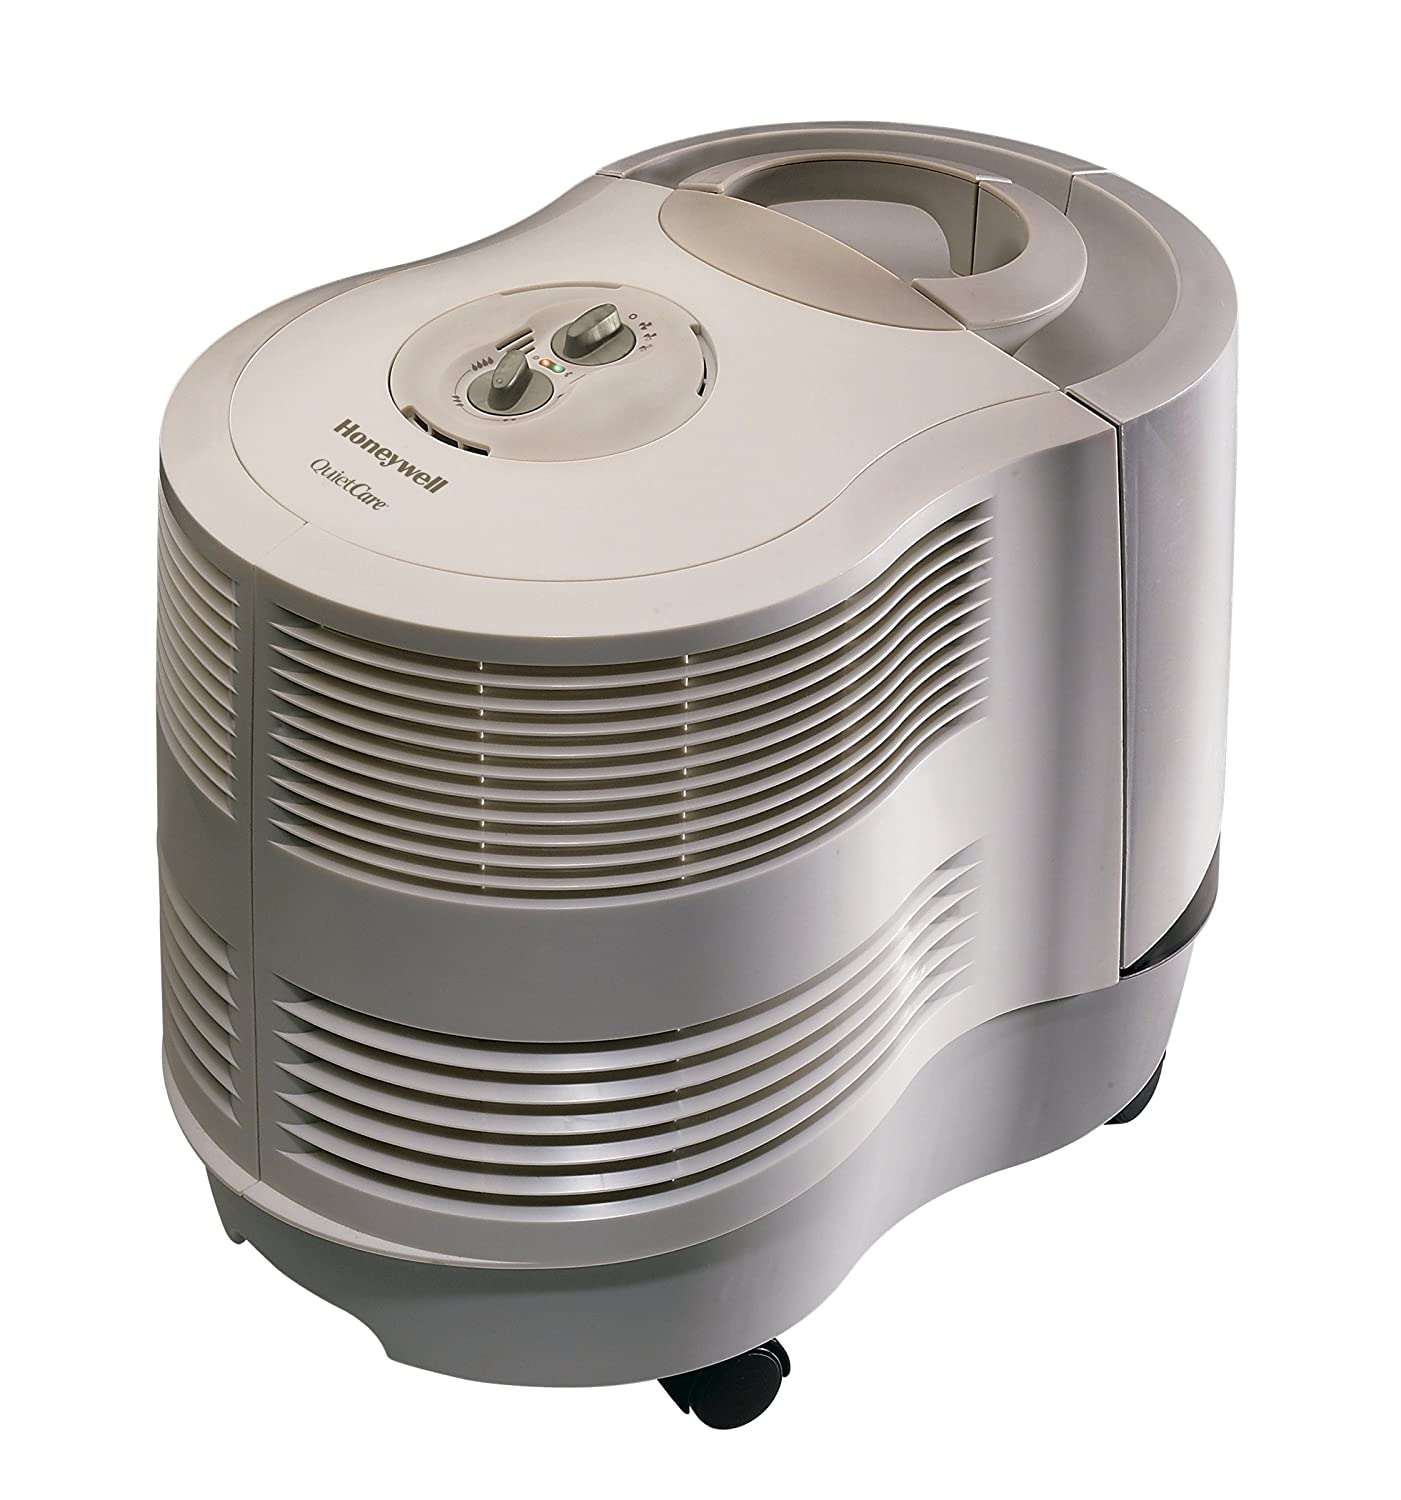 Honeywell HCM-6009 Cool Moisture Humidifier